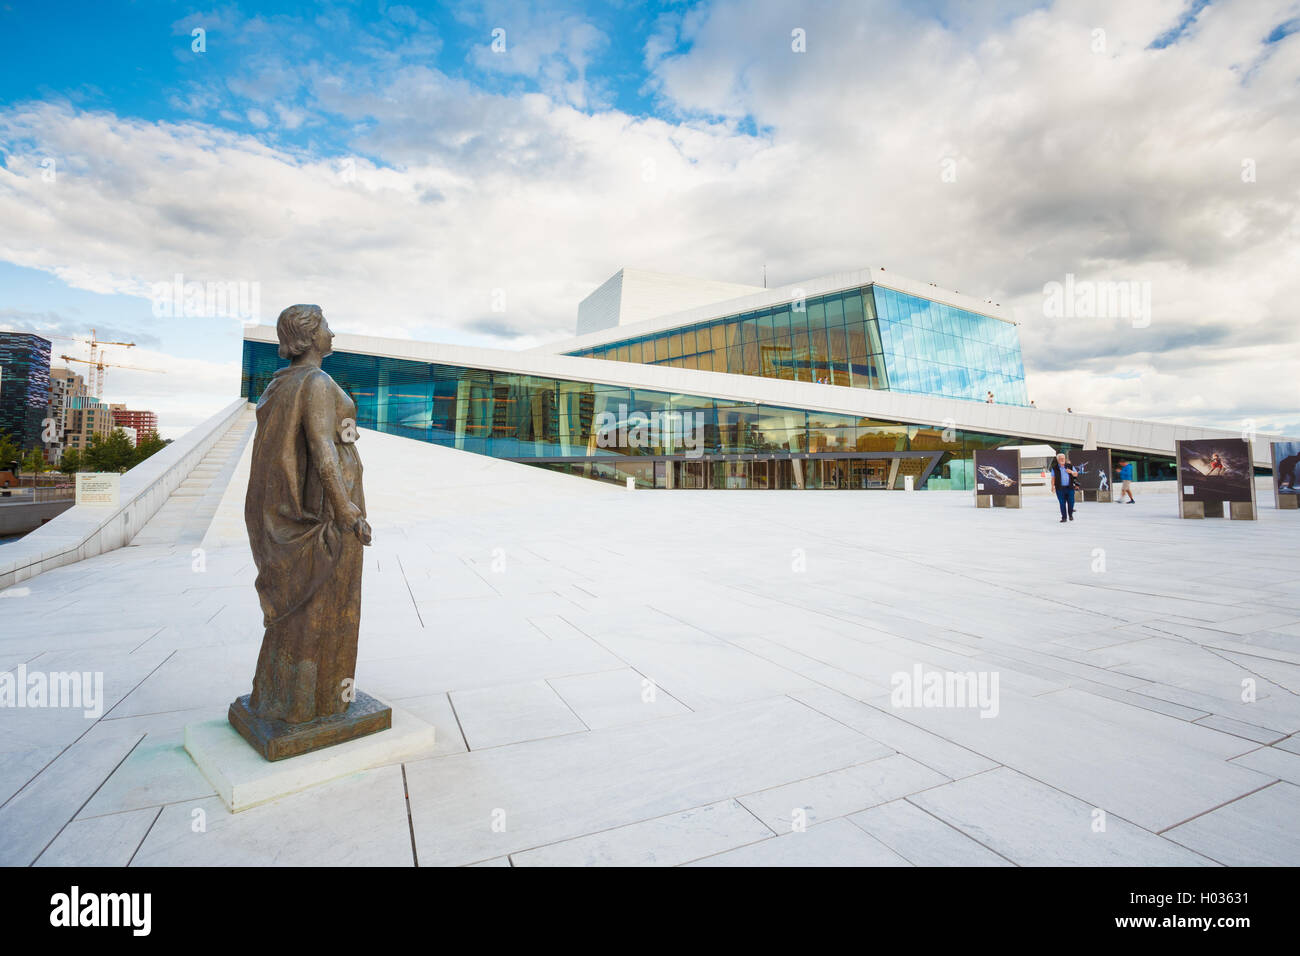 Oslo, Norway - July 31, 2014: Side View Of Glass Facade Of Oslo Opera And Ballet House. The Bronze Statue On White Stock Photo